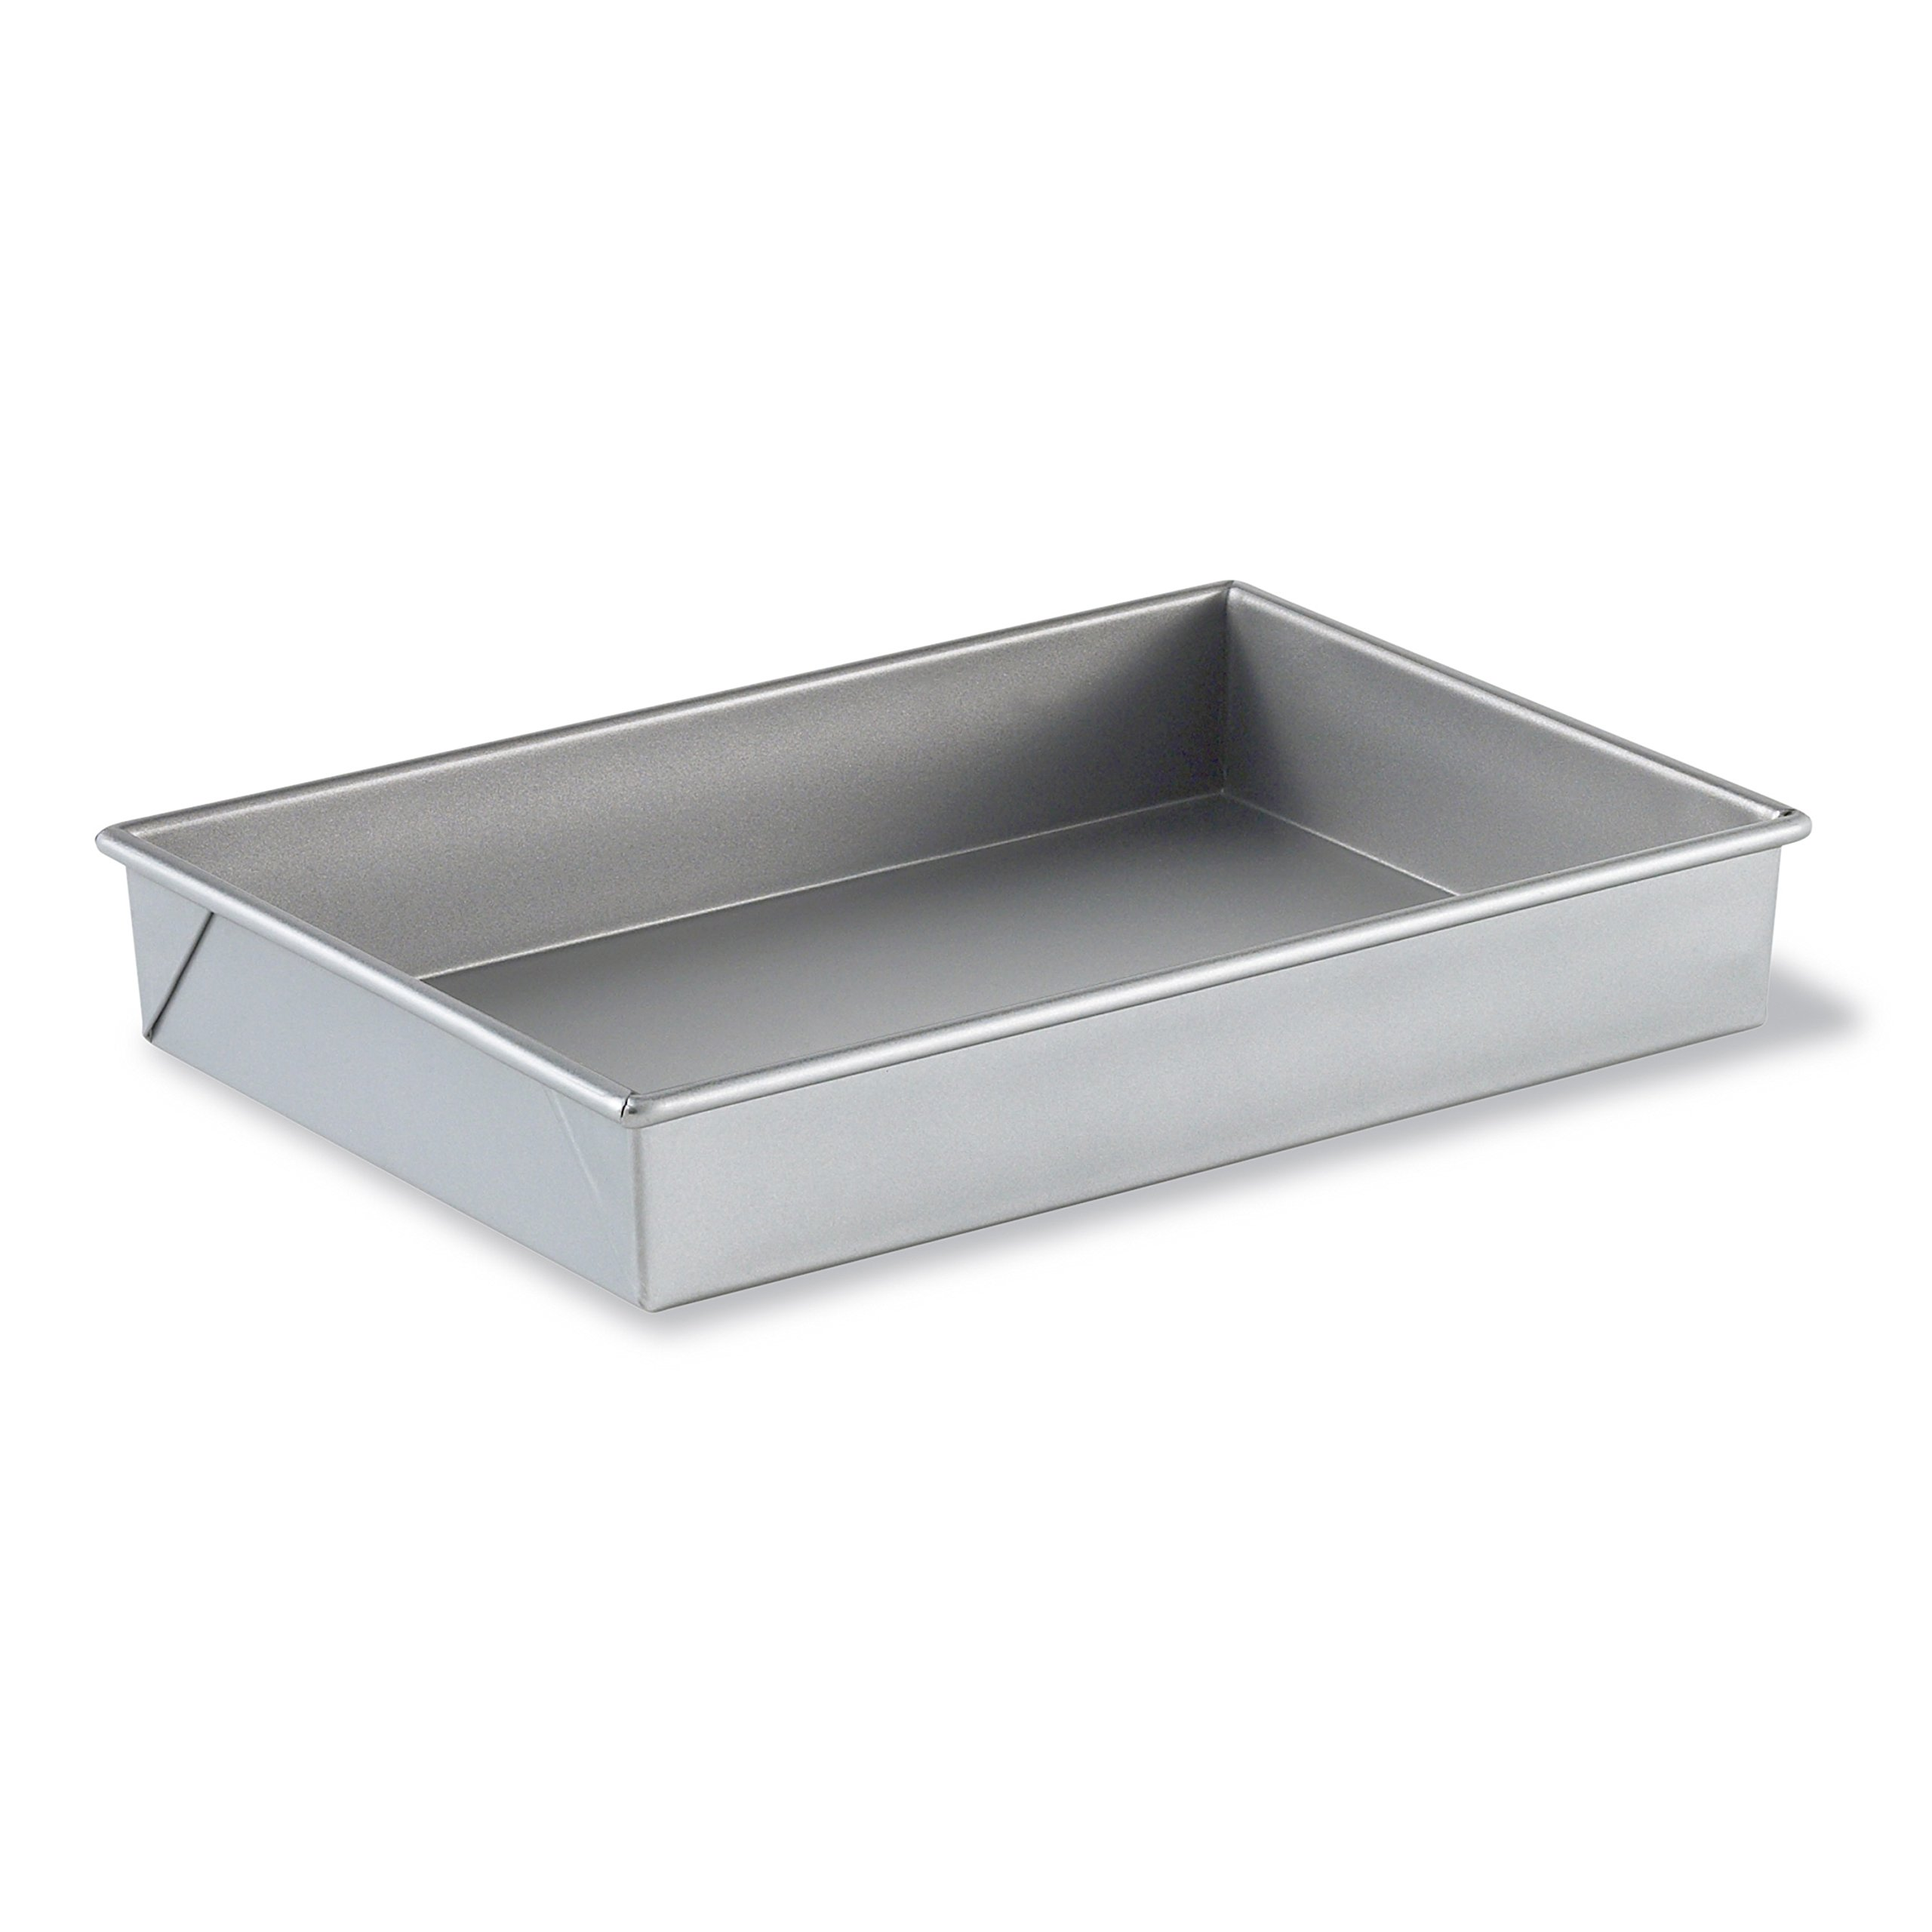 Calphalon Nonstick Bakeware, Rectangular Cake Pan, 9-inch by 13-inch